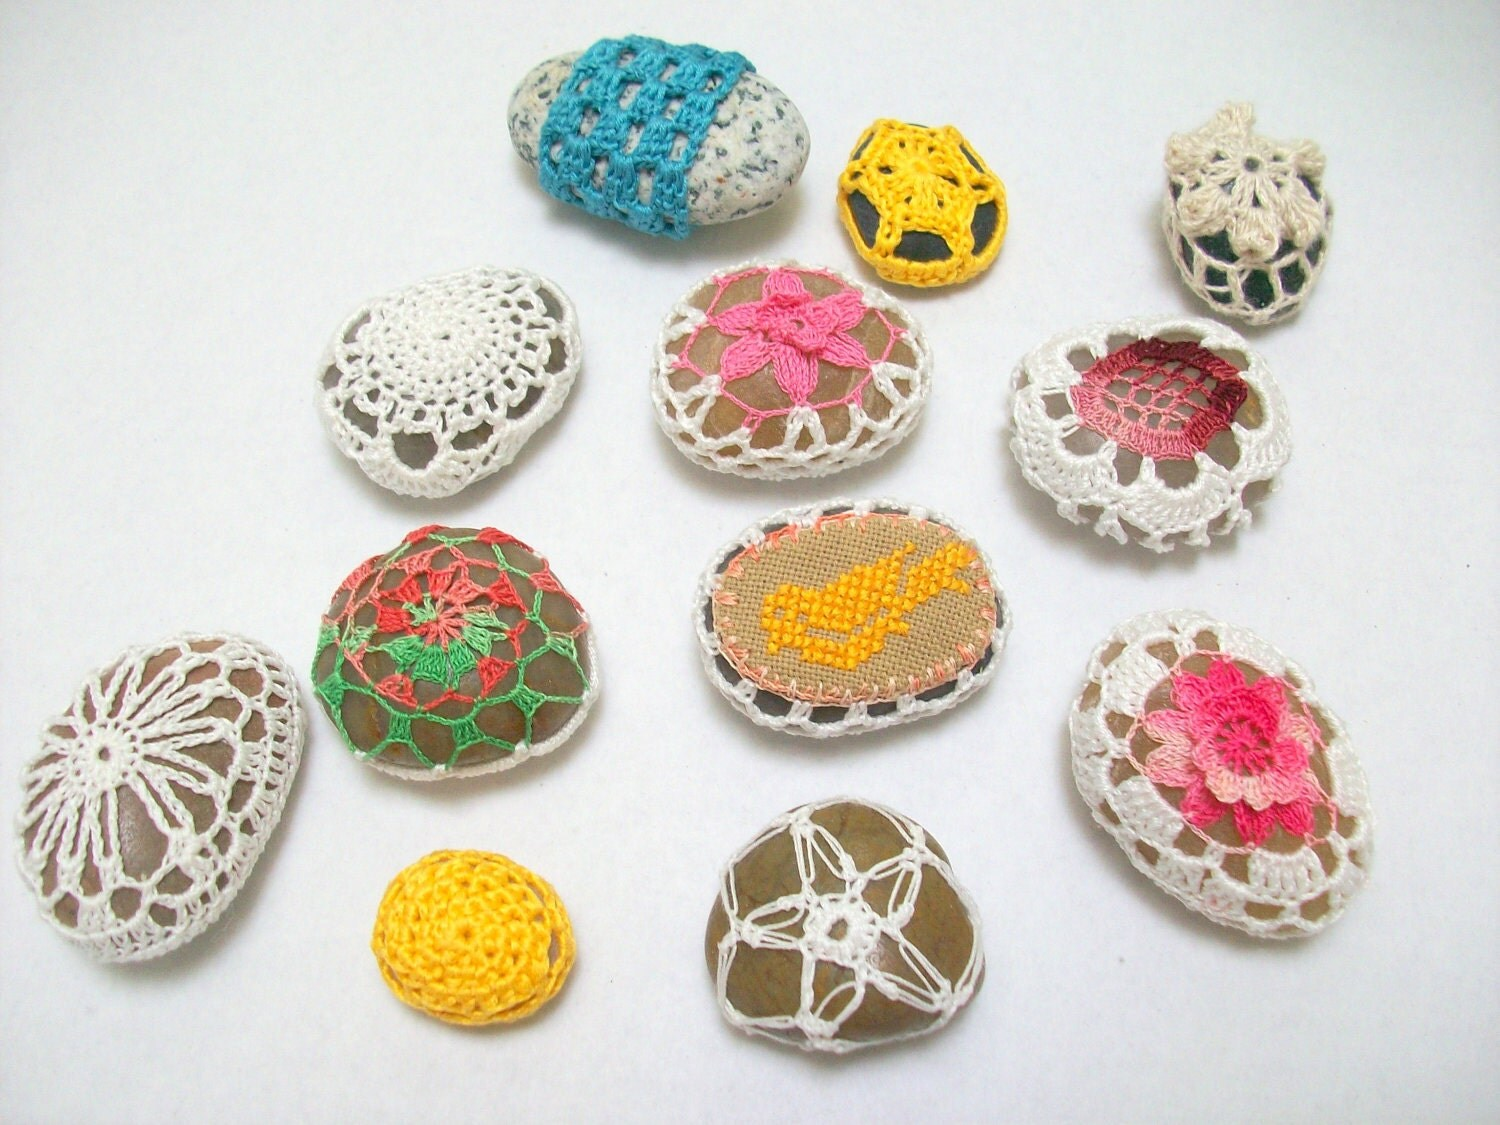 Spring colors crochet stones,wedding gift,home decor,tabledecor - MyDreamCrochets